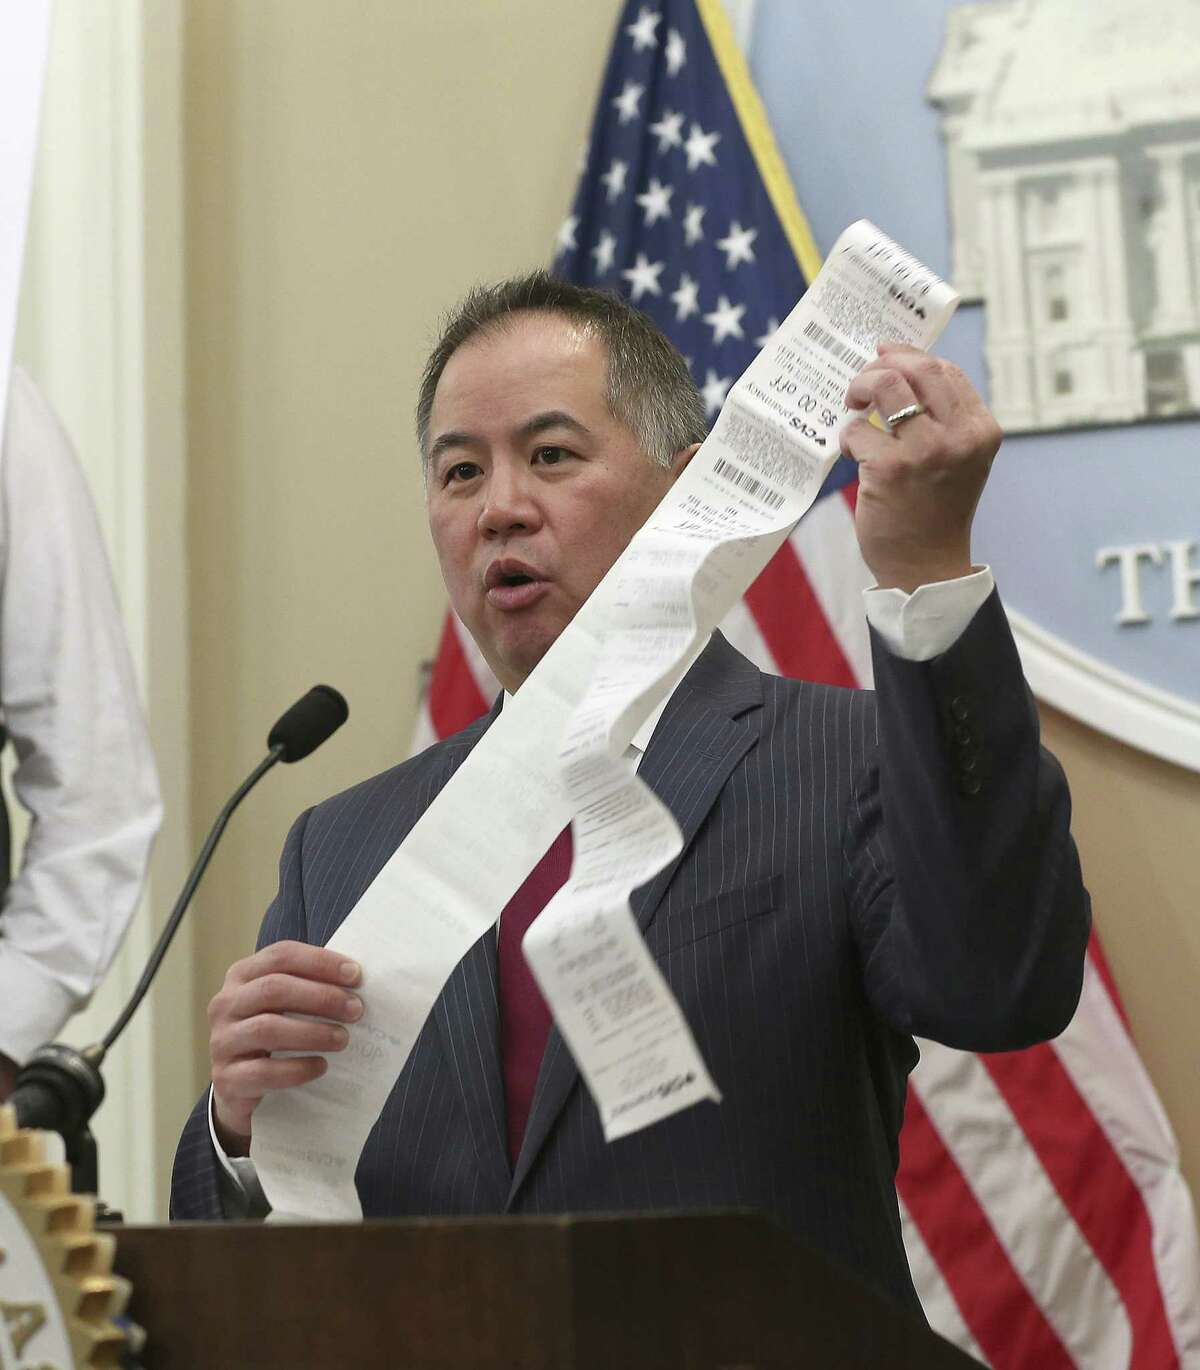 Assemblyman Phil Ting, D-San Francisco, touted environmental benefits of moving toward paperless receipts.